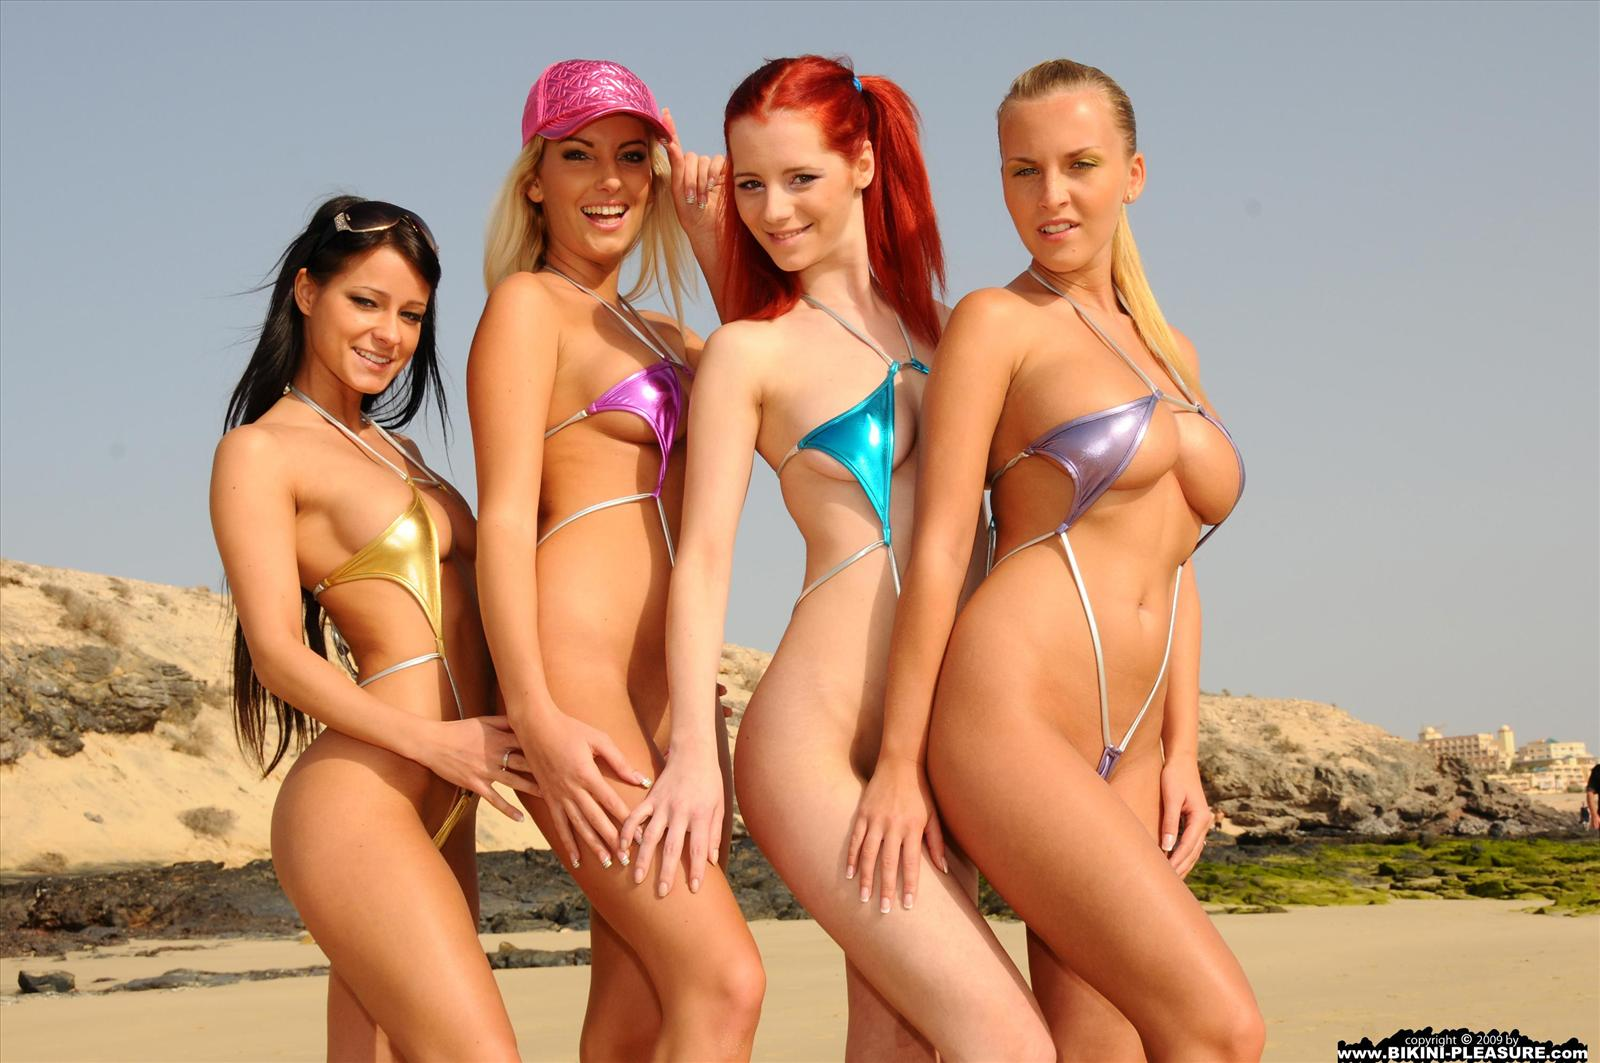 www.CelebTiger.com+Super+Mini+Bikini+Girls+At+Beach+14 Sexy Chicks Wearing Super Micro Bikini At Public Beach And Gets Nude HQ Photo Gallery